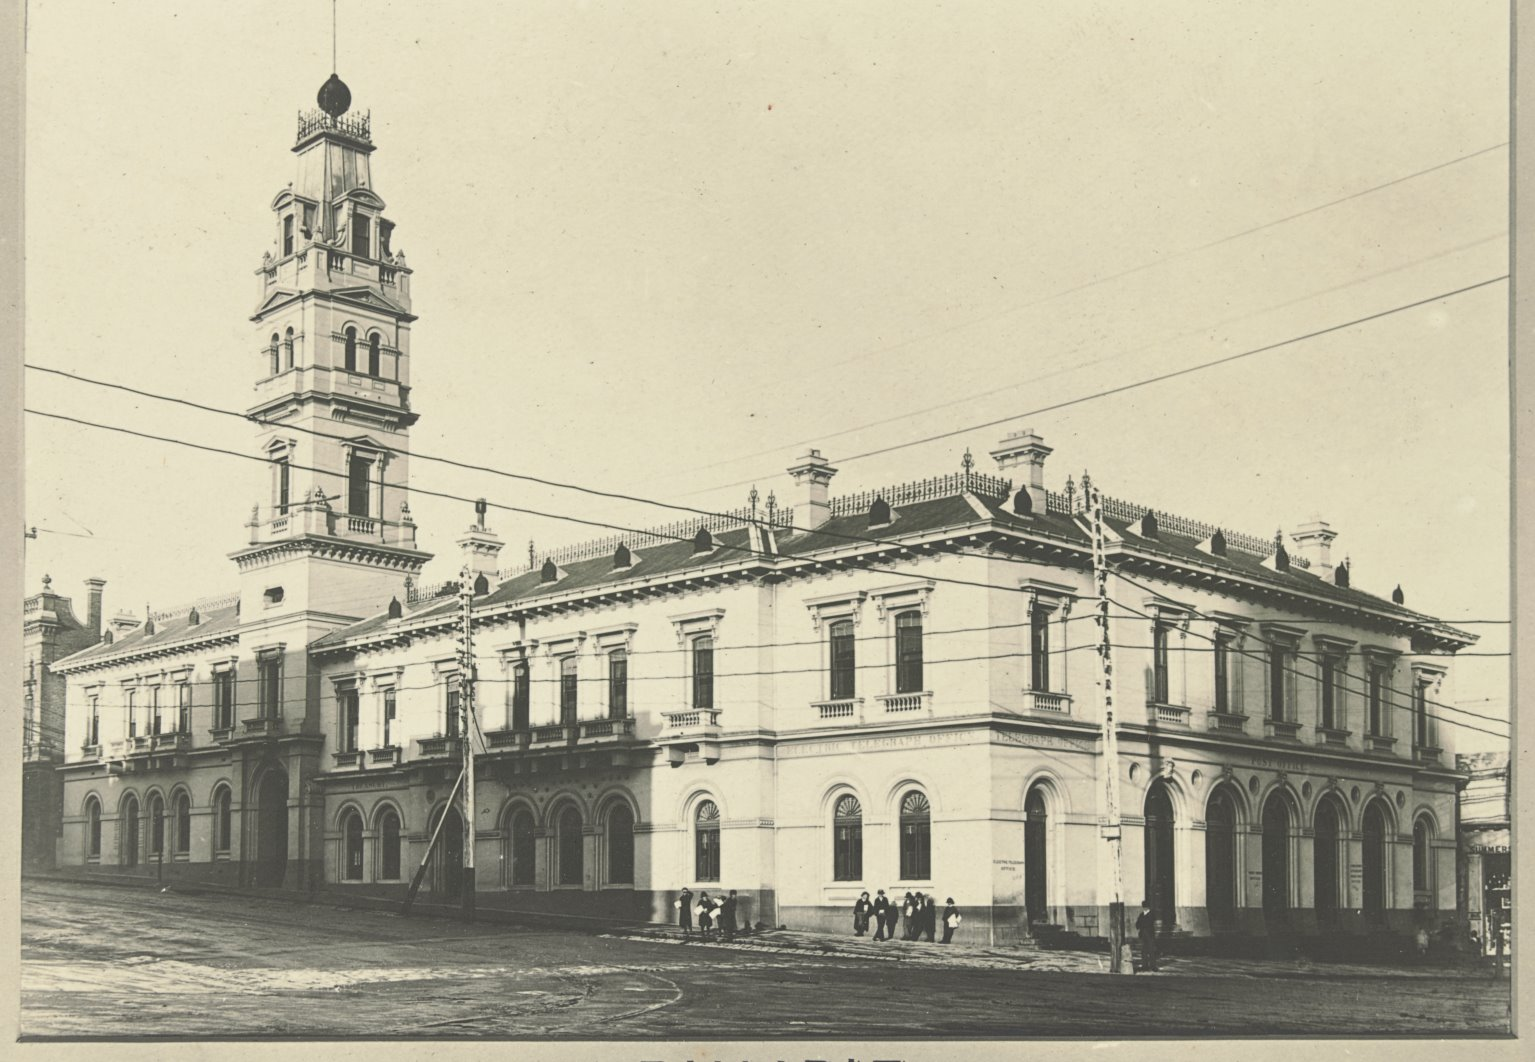 Ballarat Post Office